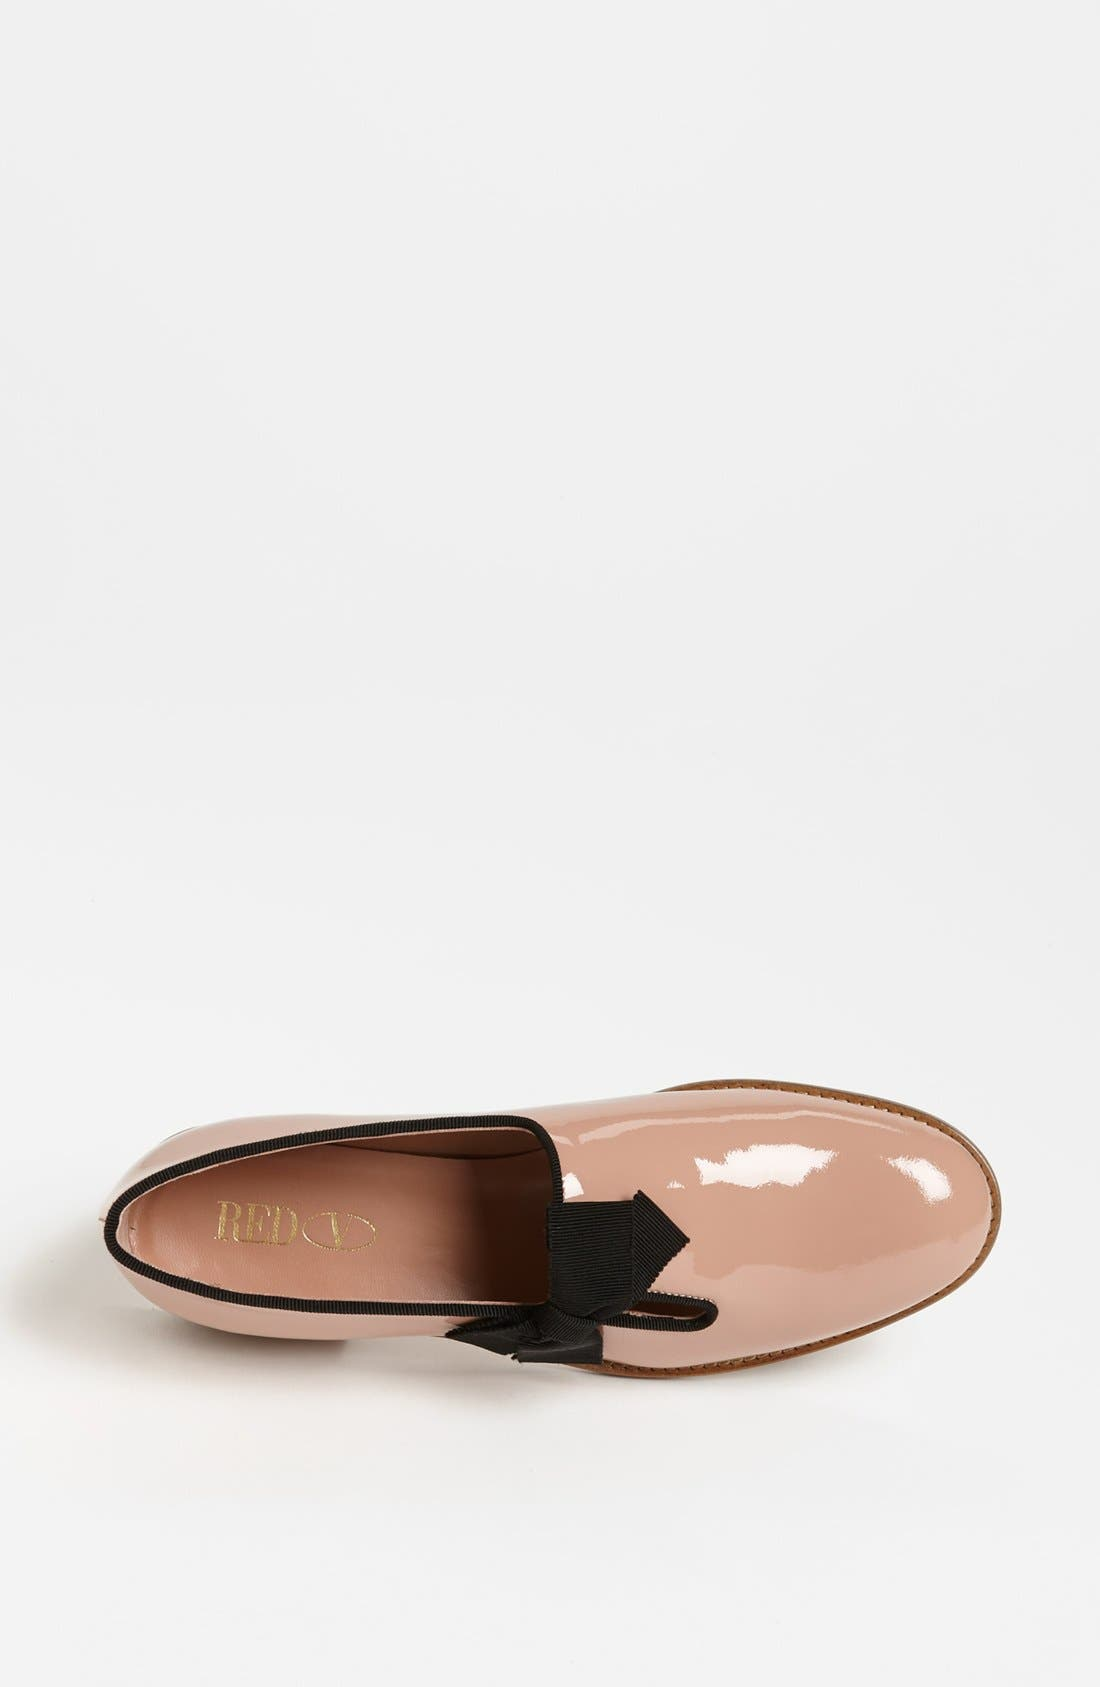 Alternate Image 3  - RED Valentino Patent Leather Tuxedo Loafer